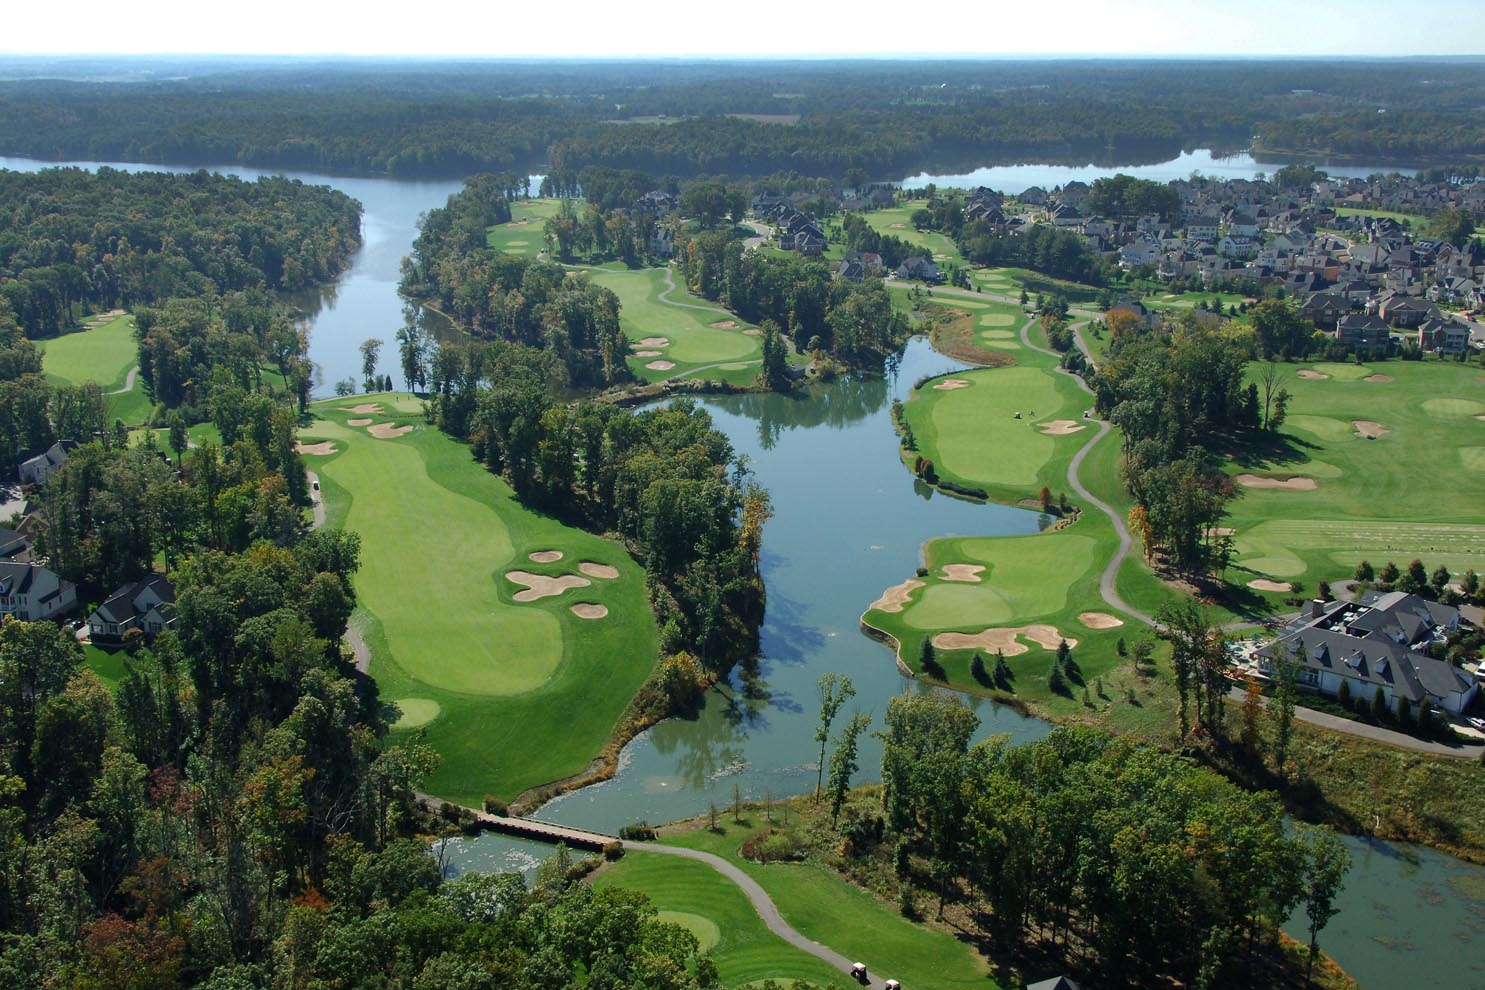 bird's eye view of lake and golf course